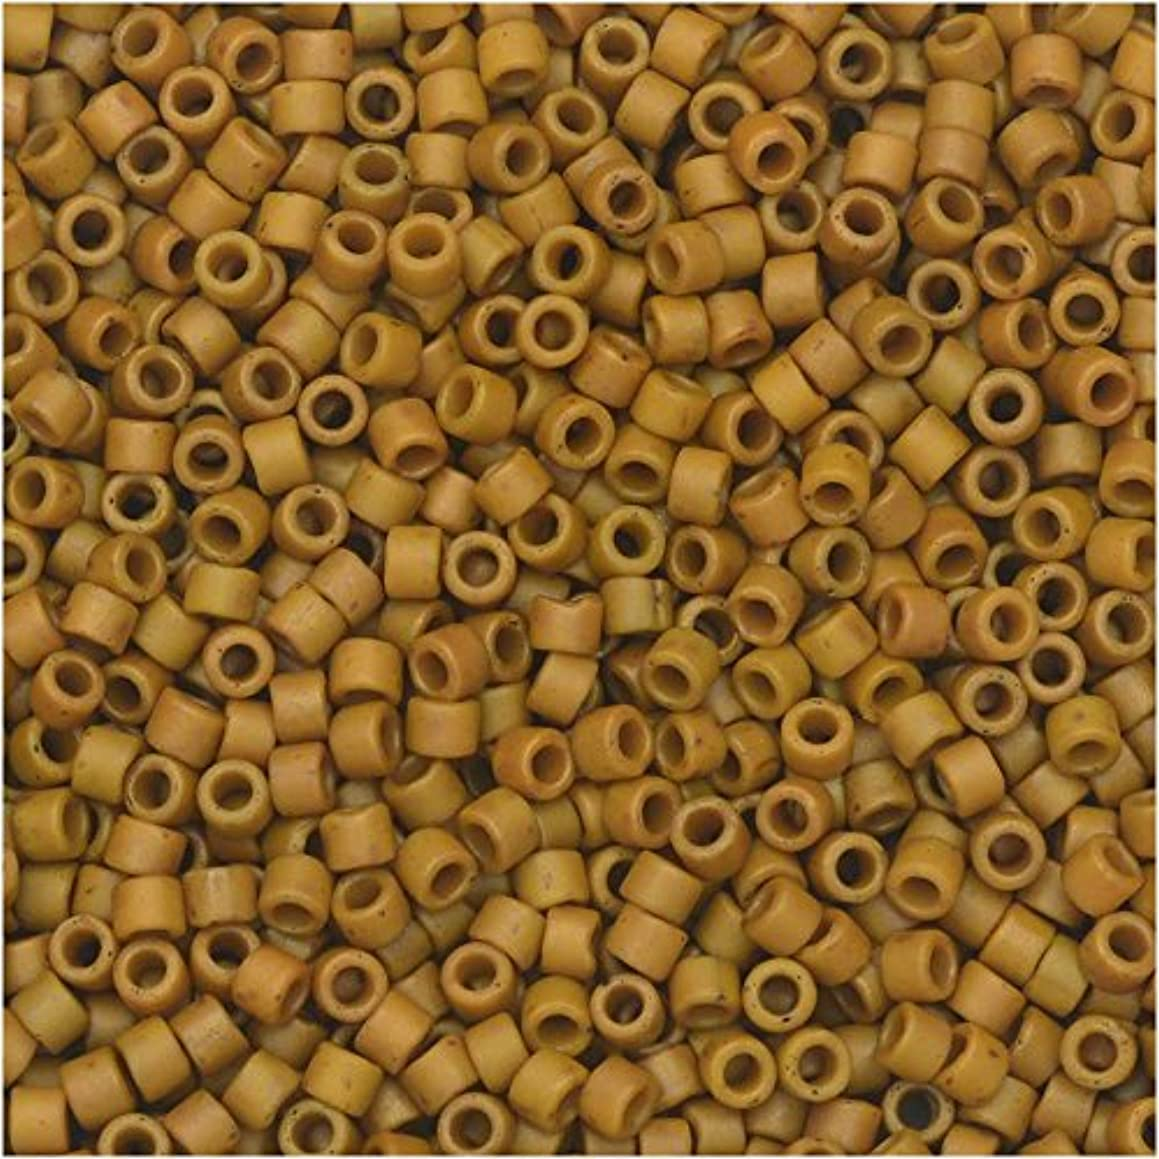 Miyuki Delica Seed Beads, 11/0 Size, 7.2 Gram Tube, 2286 Frosted Opaque Glazed Pecan Yellow